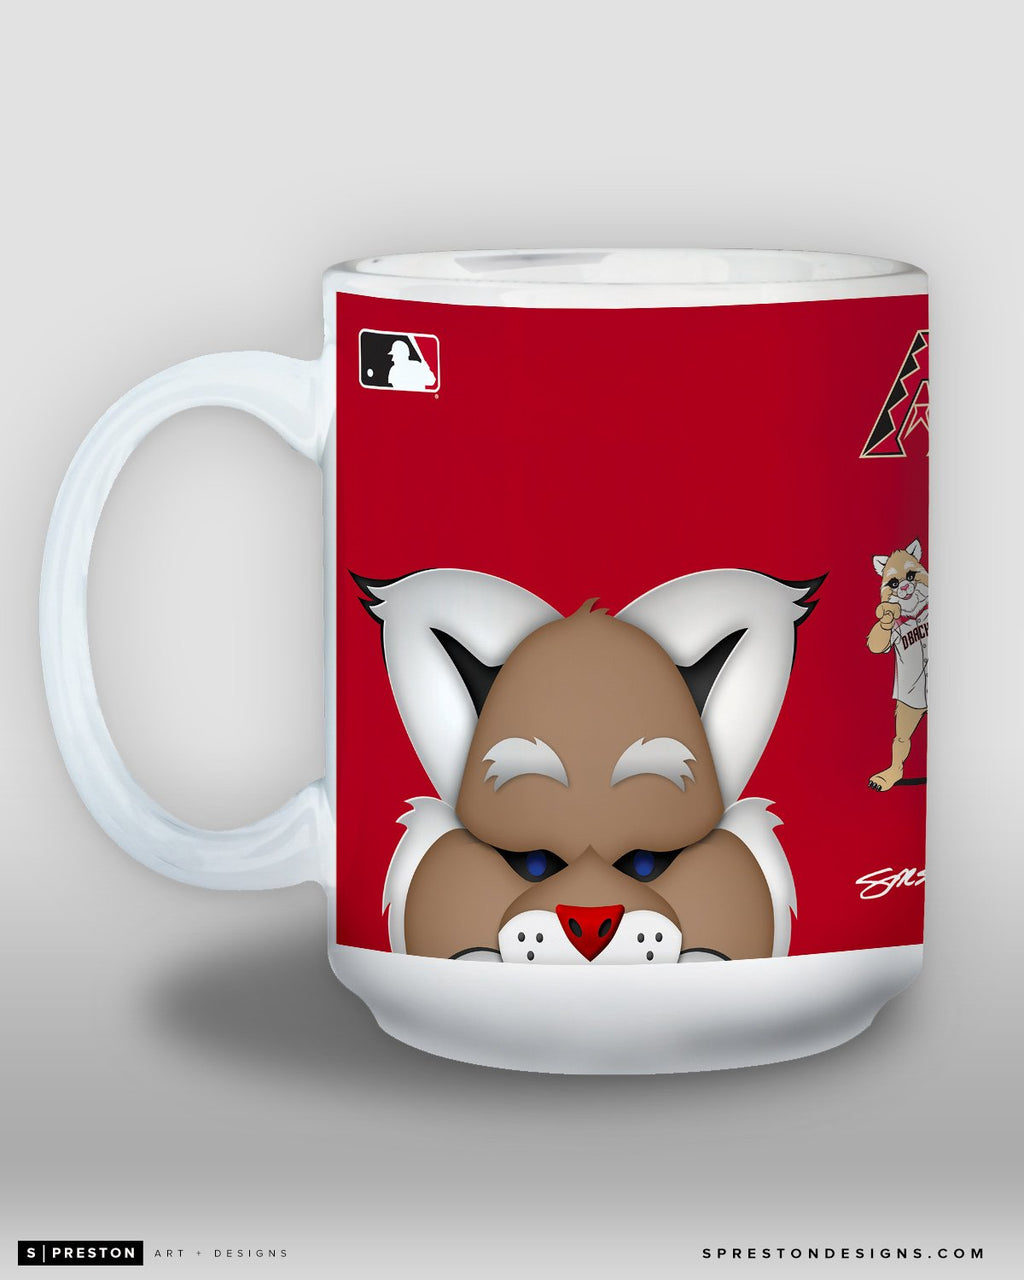 Minimalist D. Baxter the Bobcat Coffee Mug - MLB Licensed - Arizona Diamondbacks Mascot